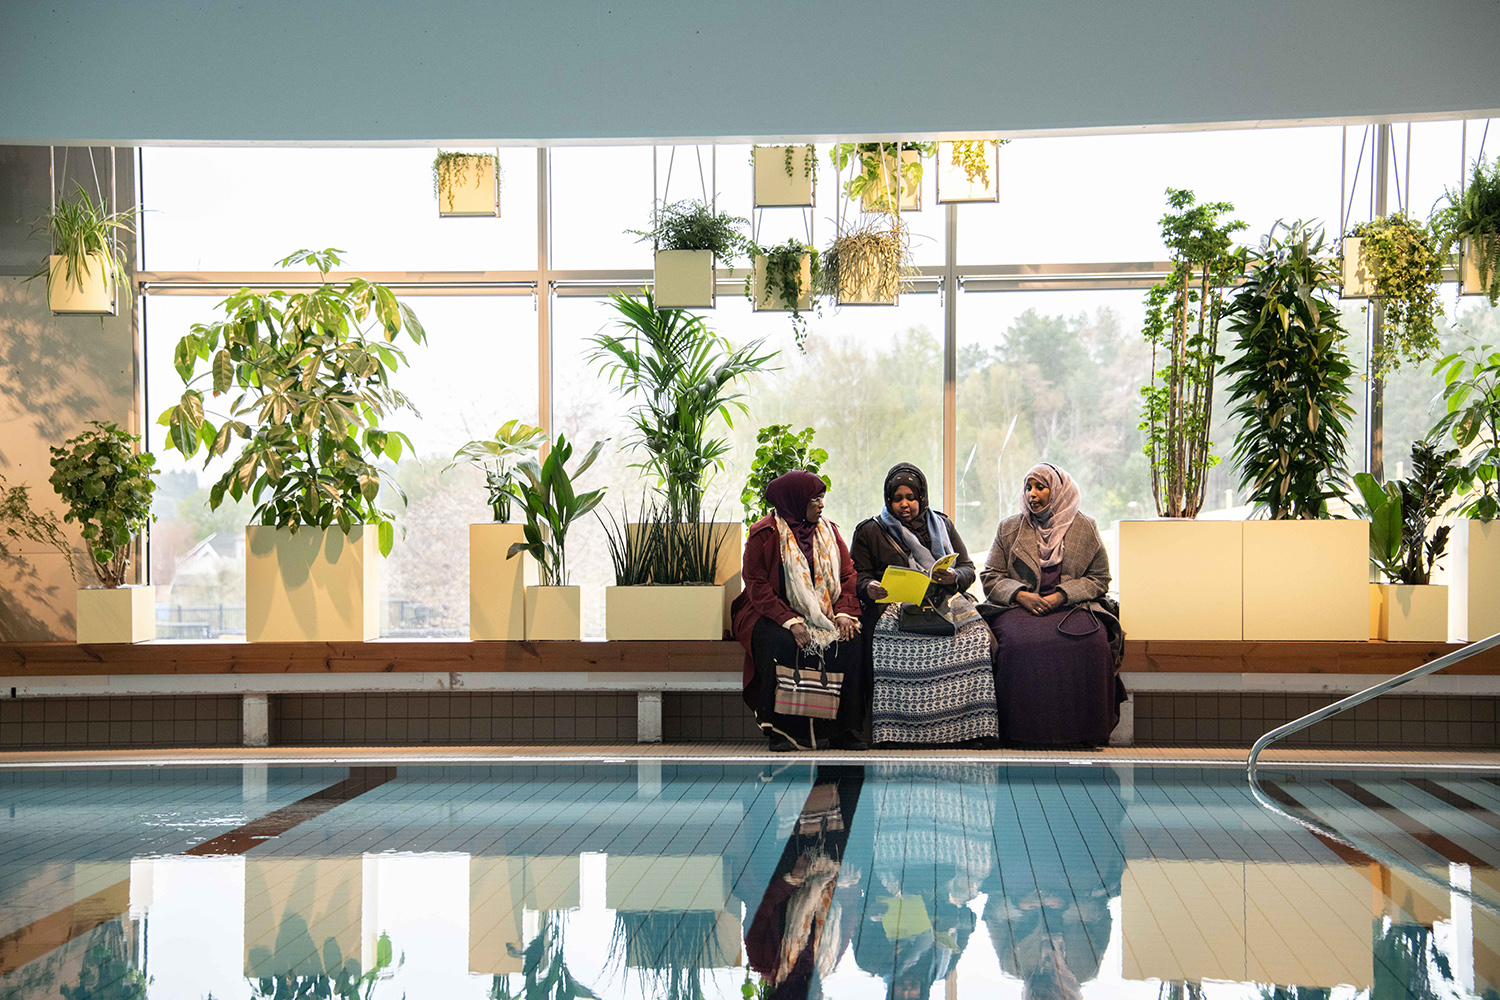 An indoor swimming pool with several plants in the background and three sitting women.